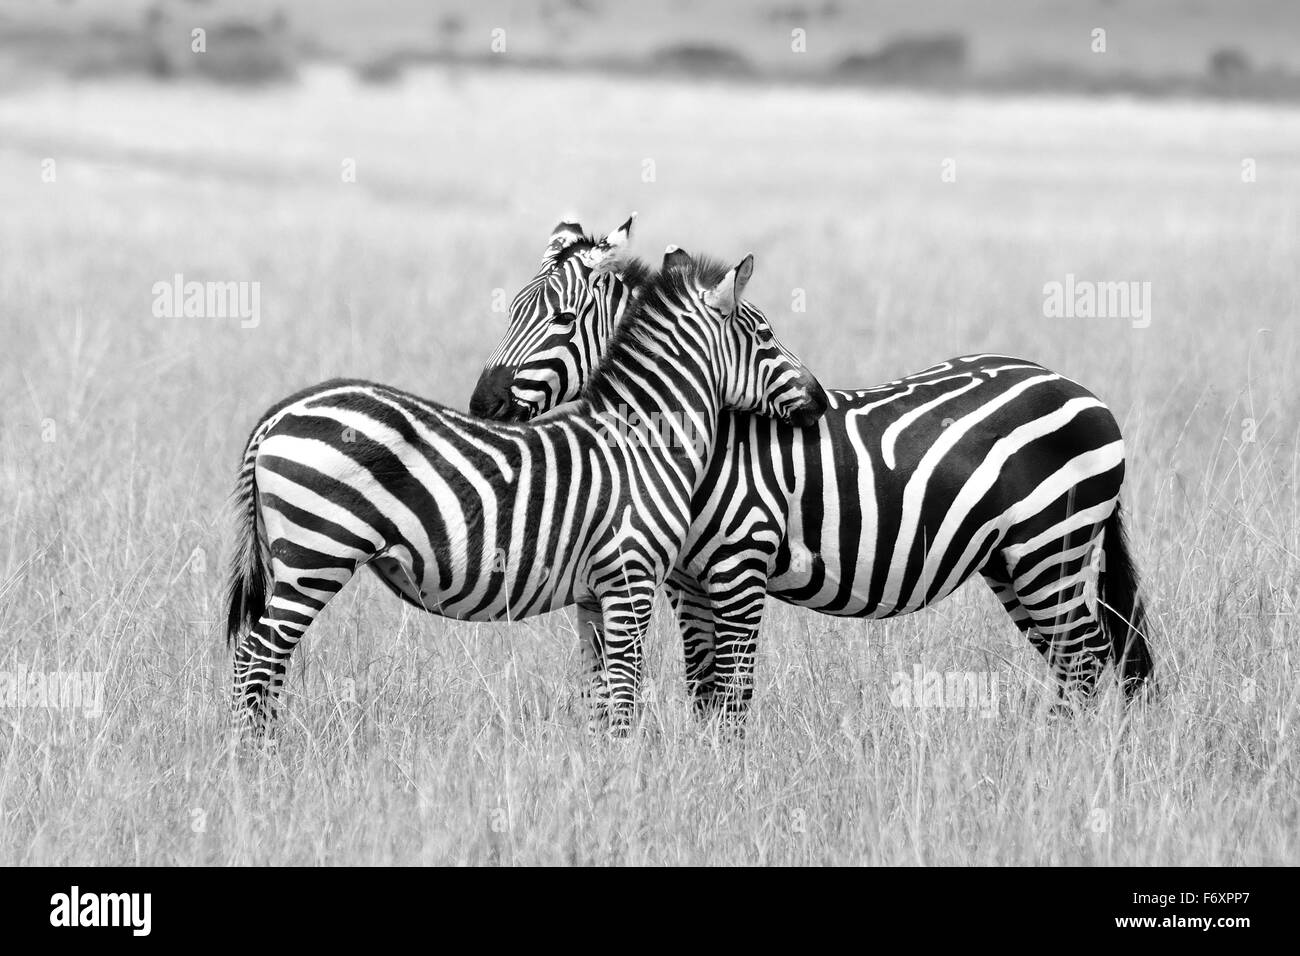 Two Zebras, mother and her cub near in the savanna of Masai Mara Reserve - Stock Image